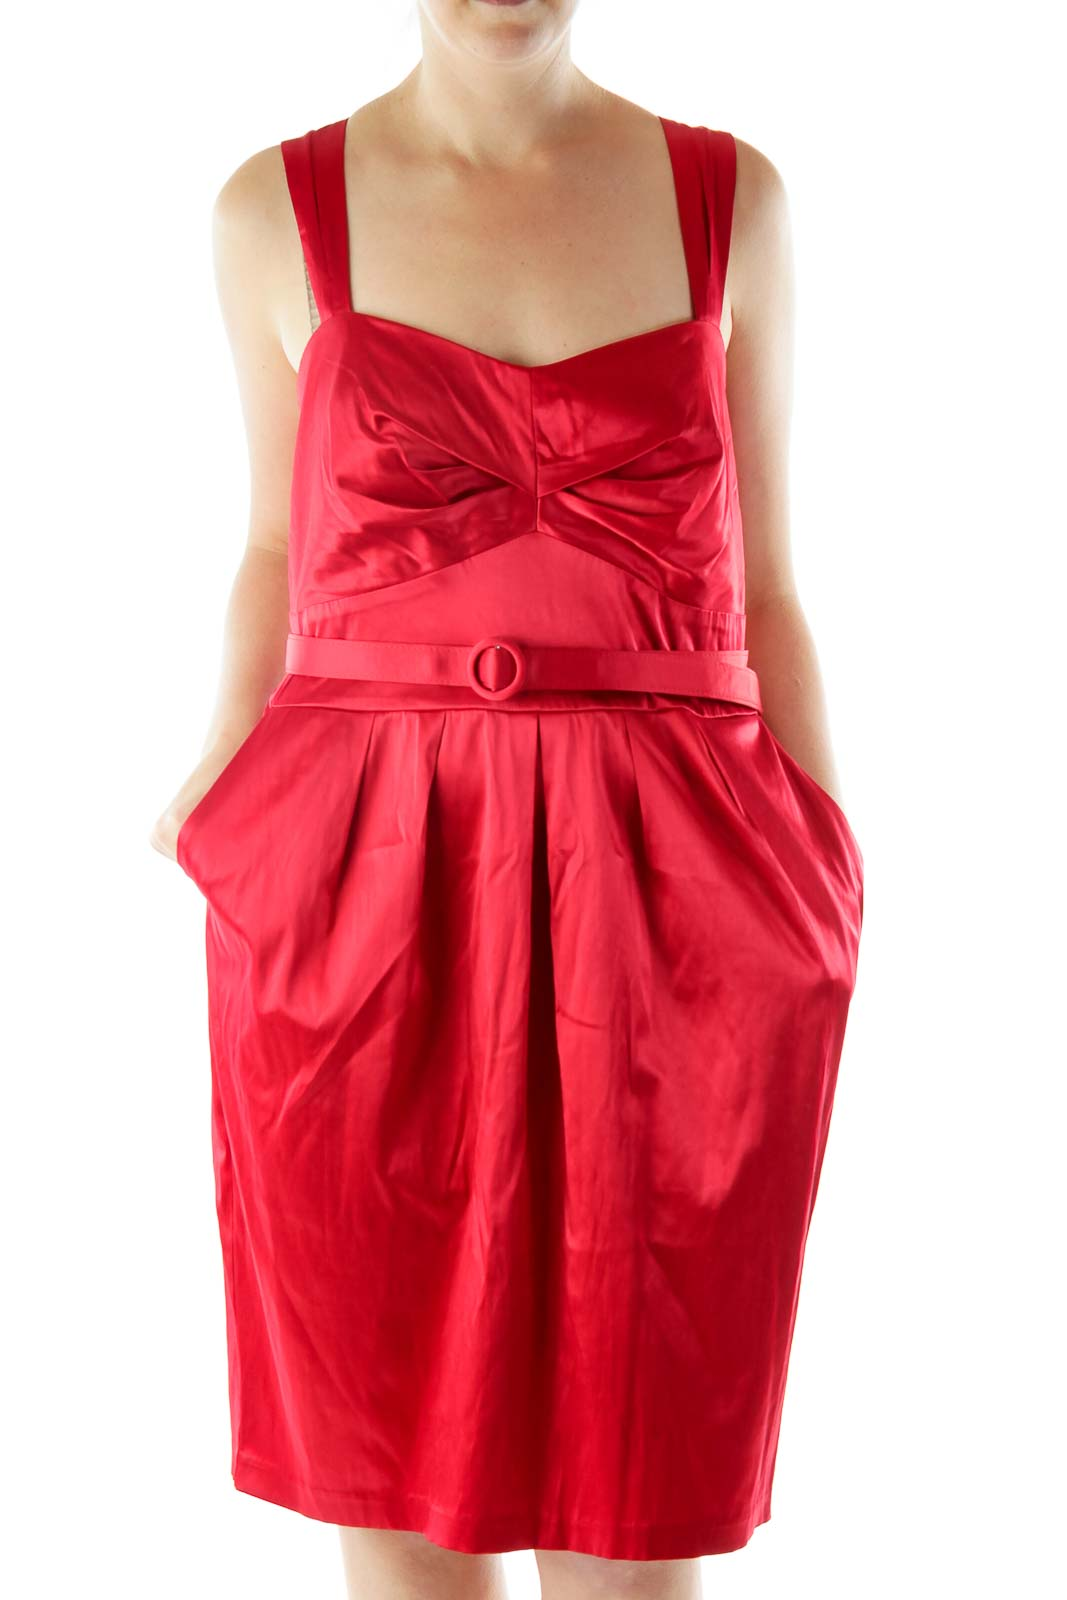 Red Satin Cocktail Dress Front